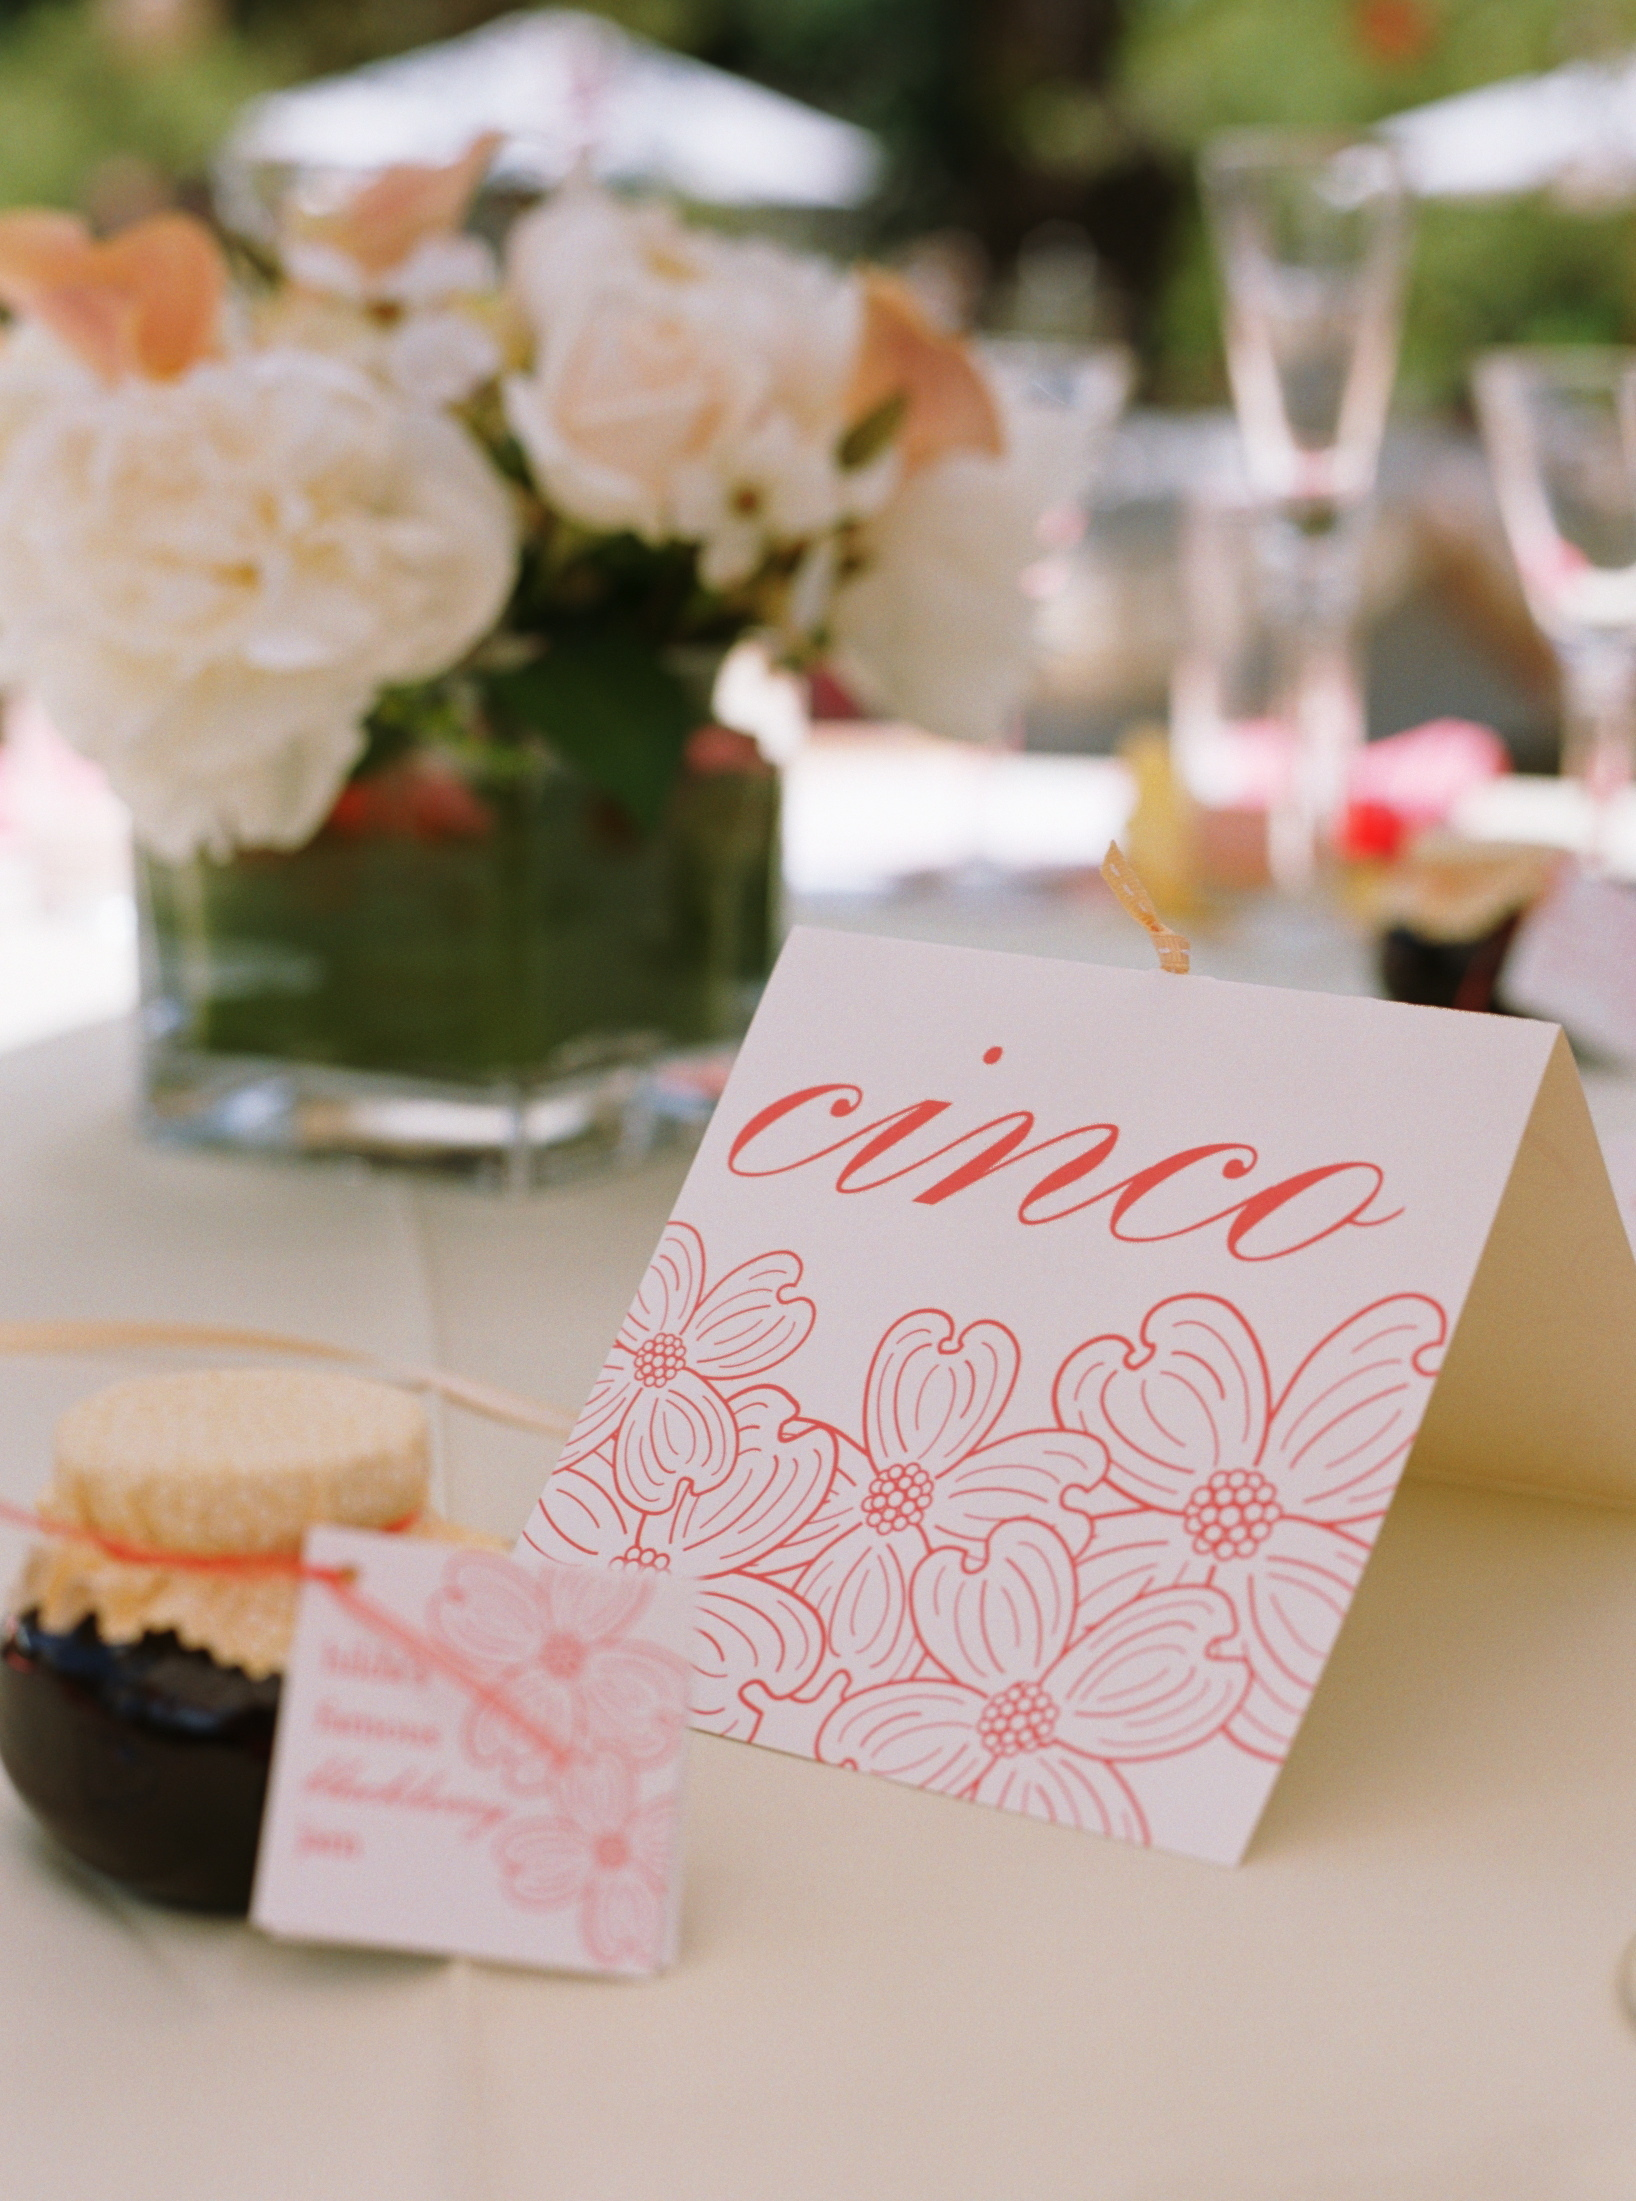 Reception, Flowers & Decor, Decor, Stationery, Destinations, pink, North America, Table Numbers, Wedding, Table number, Napa, Dogwood, Napa valley